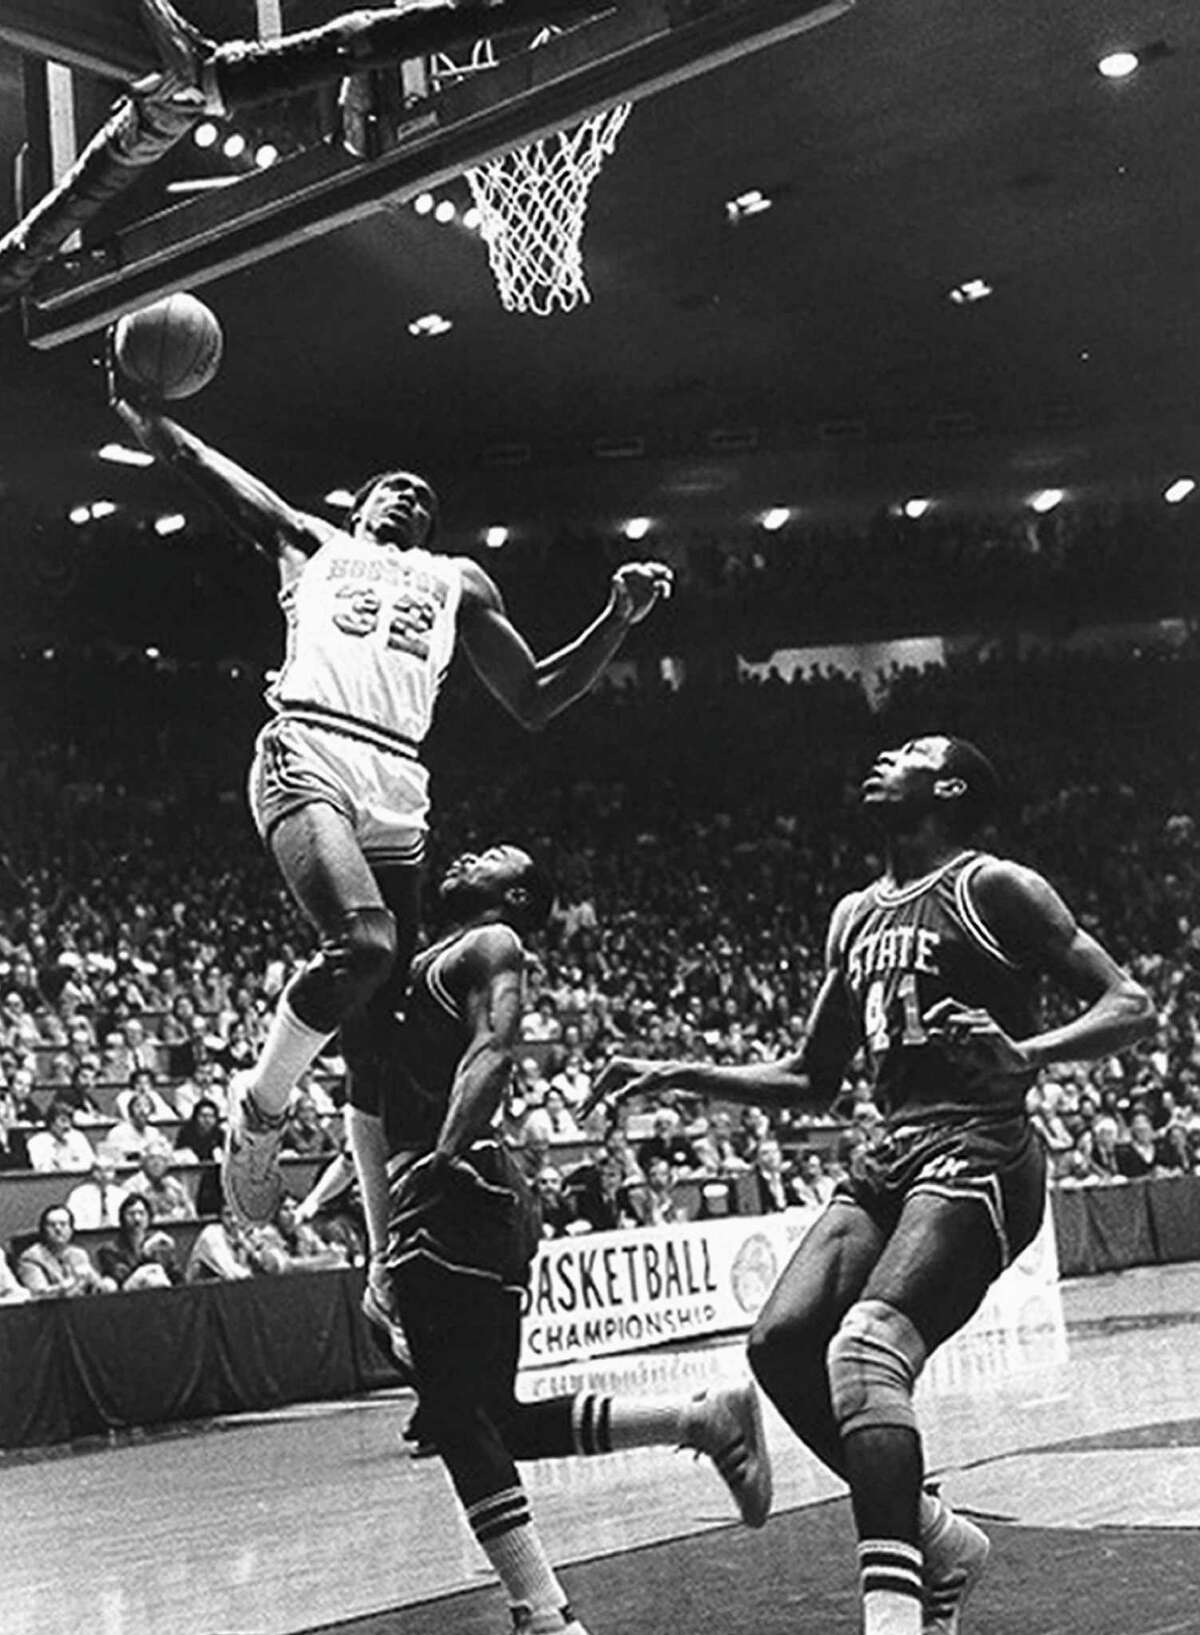 2. 1983 Houston: Benny Anders goes up for the slam dunk against North Carolina State during the NCAA Championship Game in Albuquerque, N.M., on April 4, 1983. The Wolfpack won 54-52 on a late dunk.